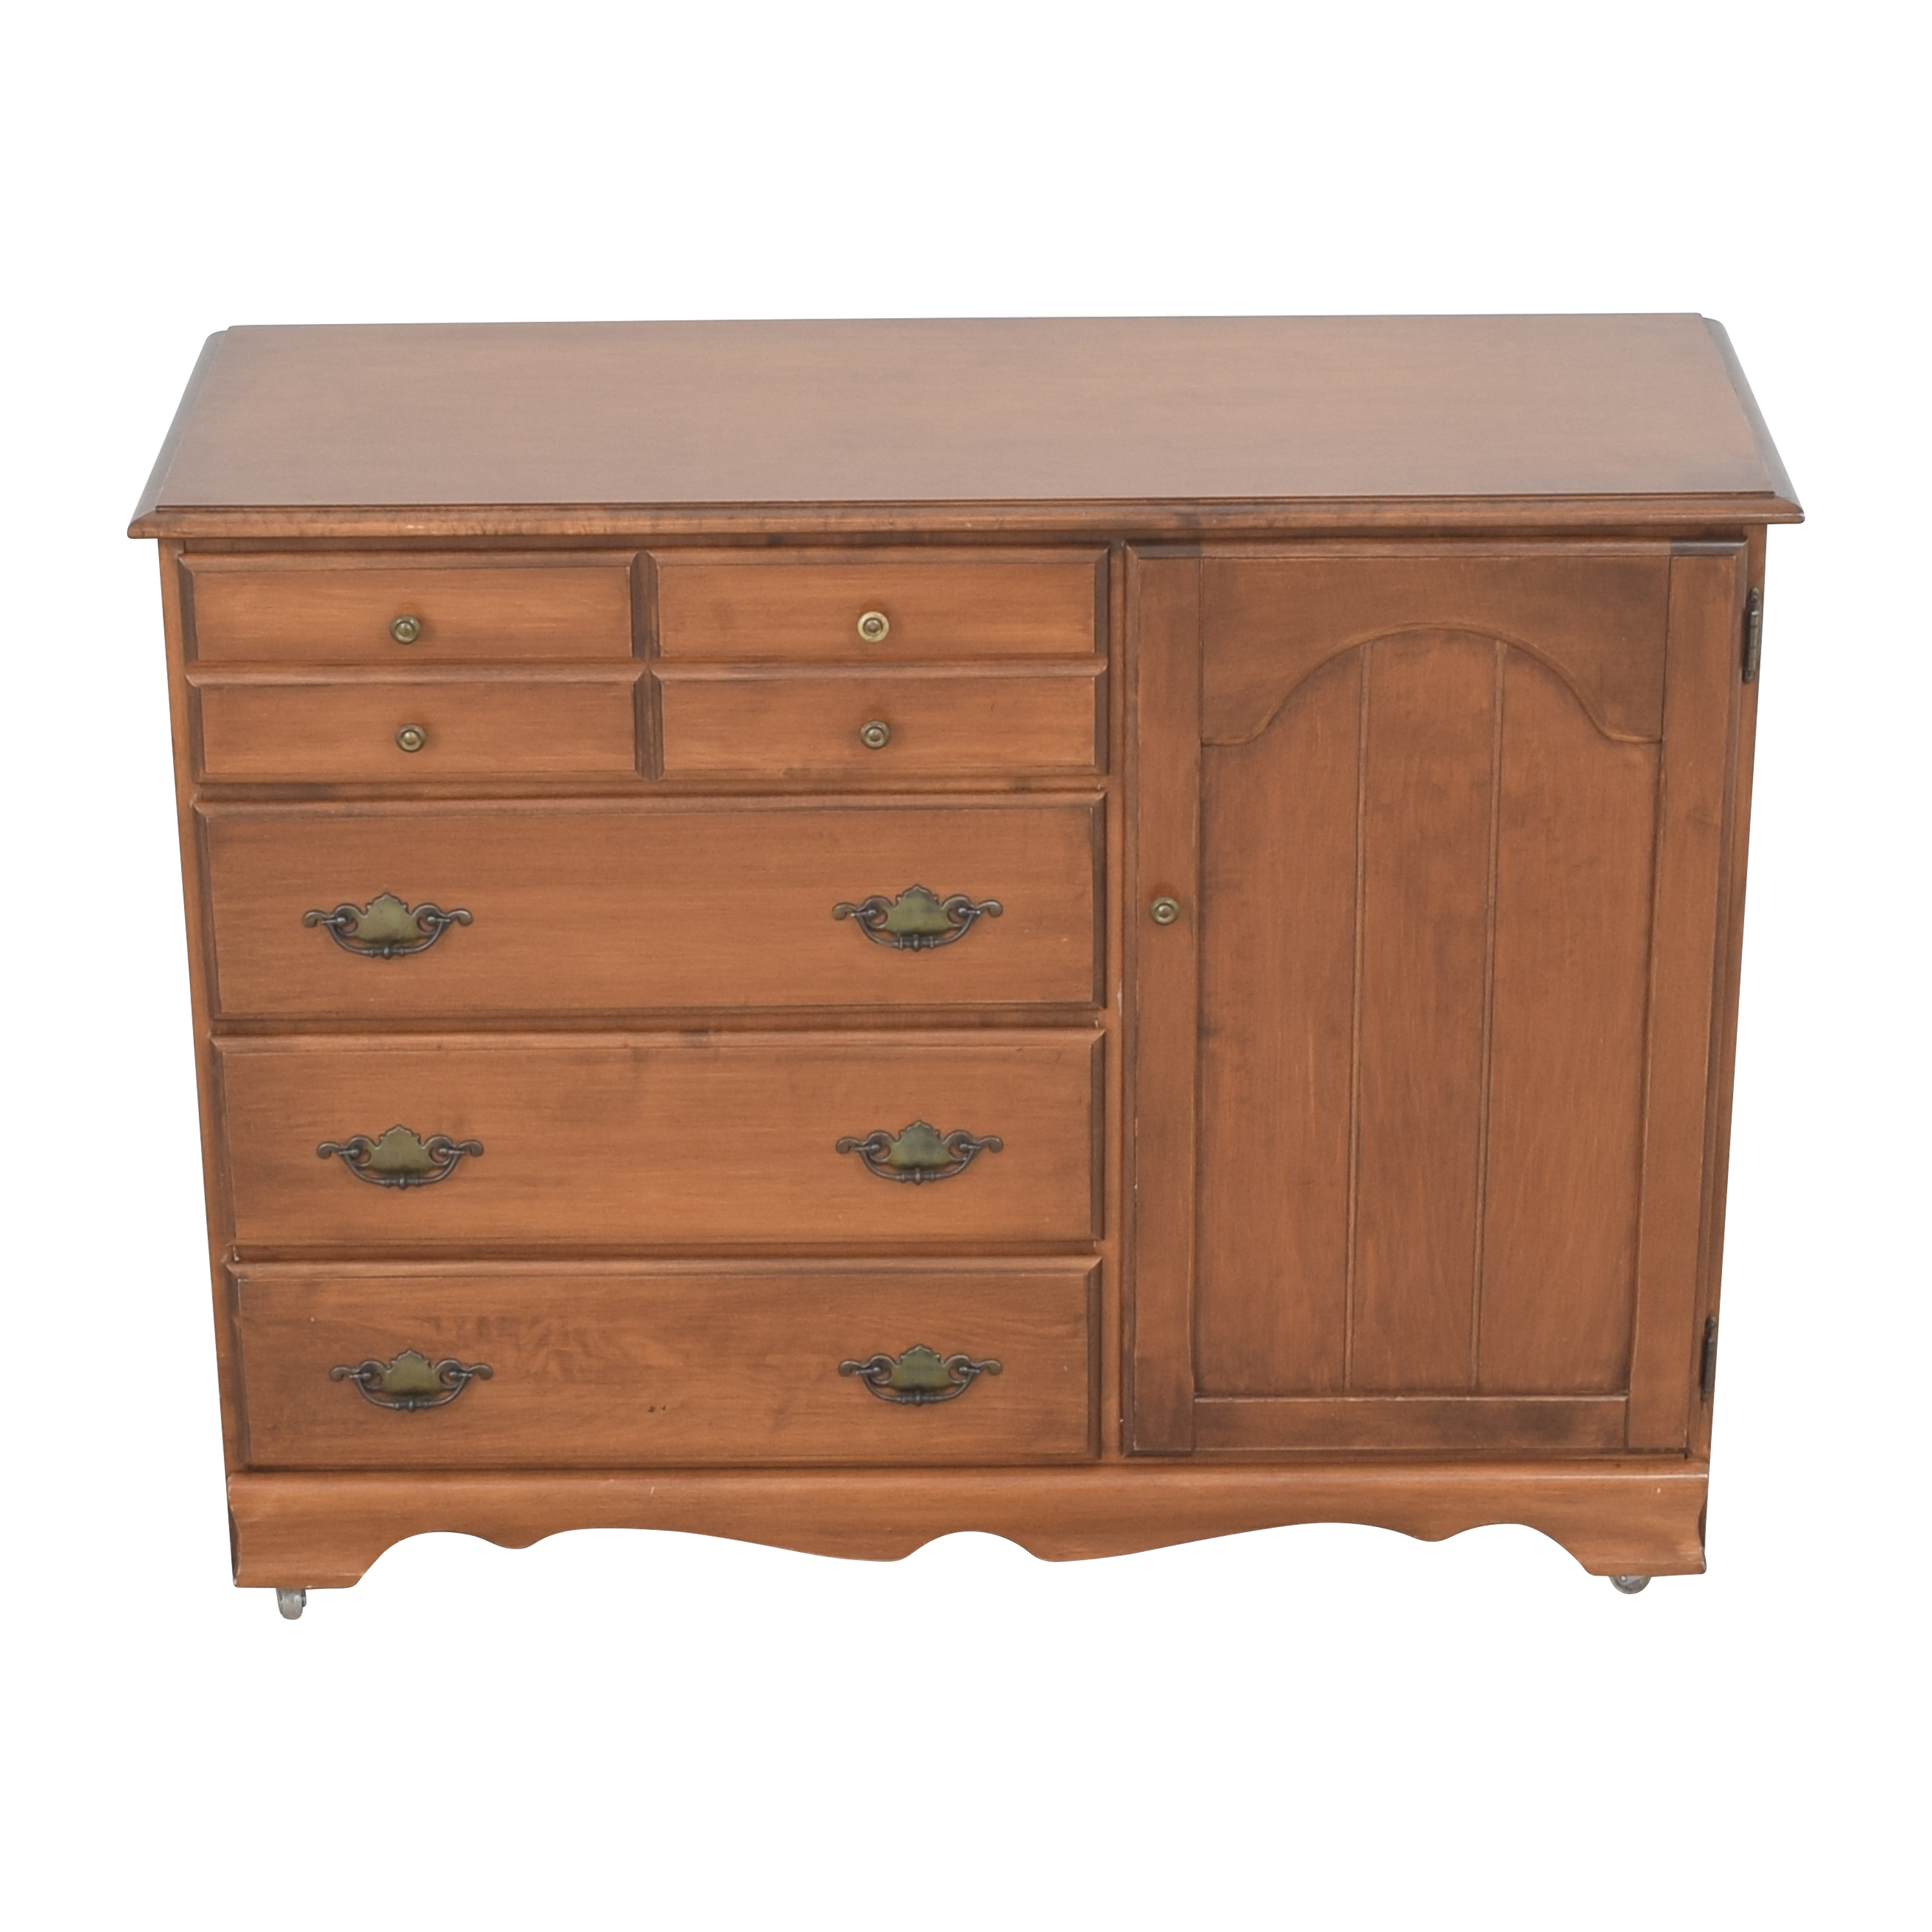 Four Drawer Dresser with Cabinet / Dressers